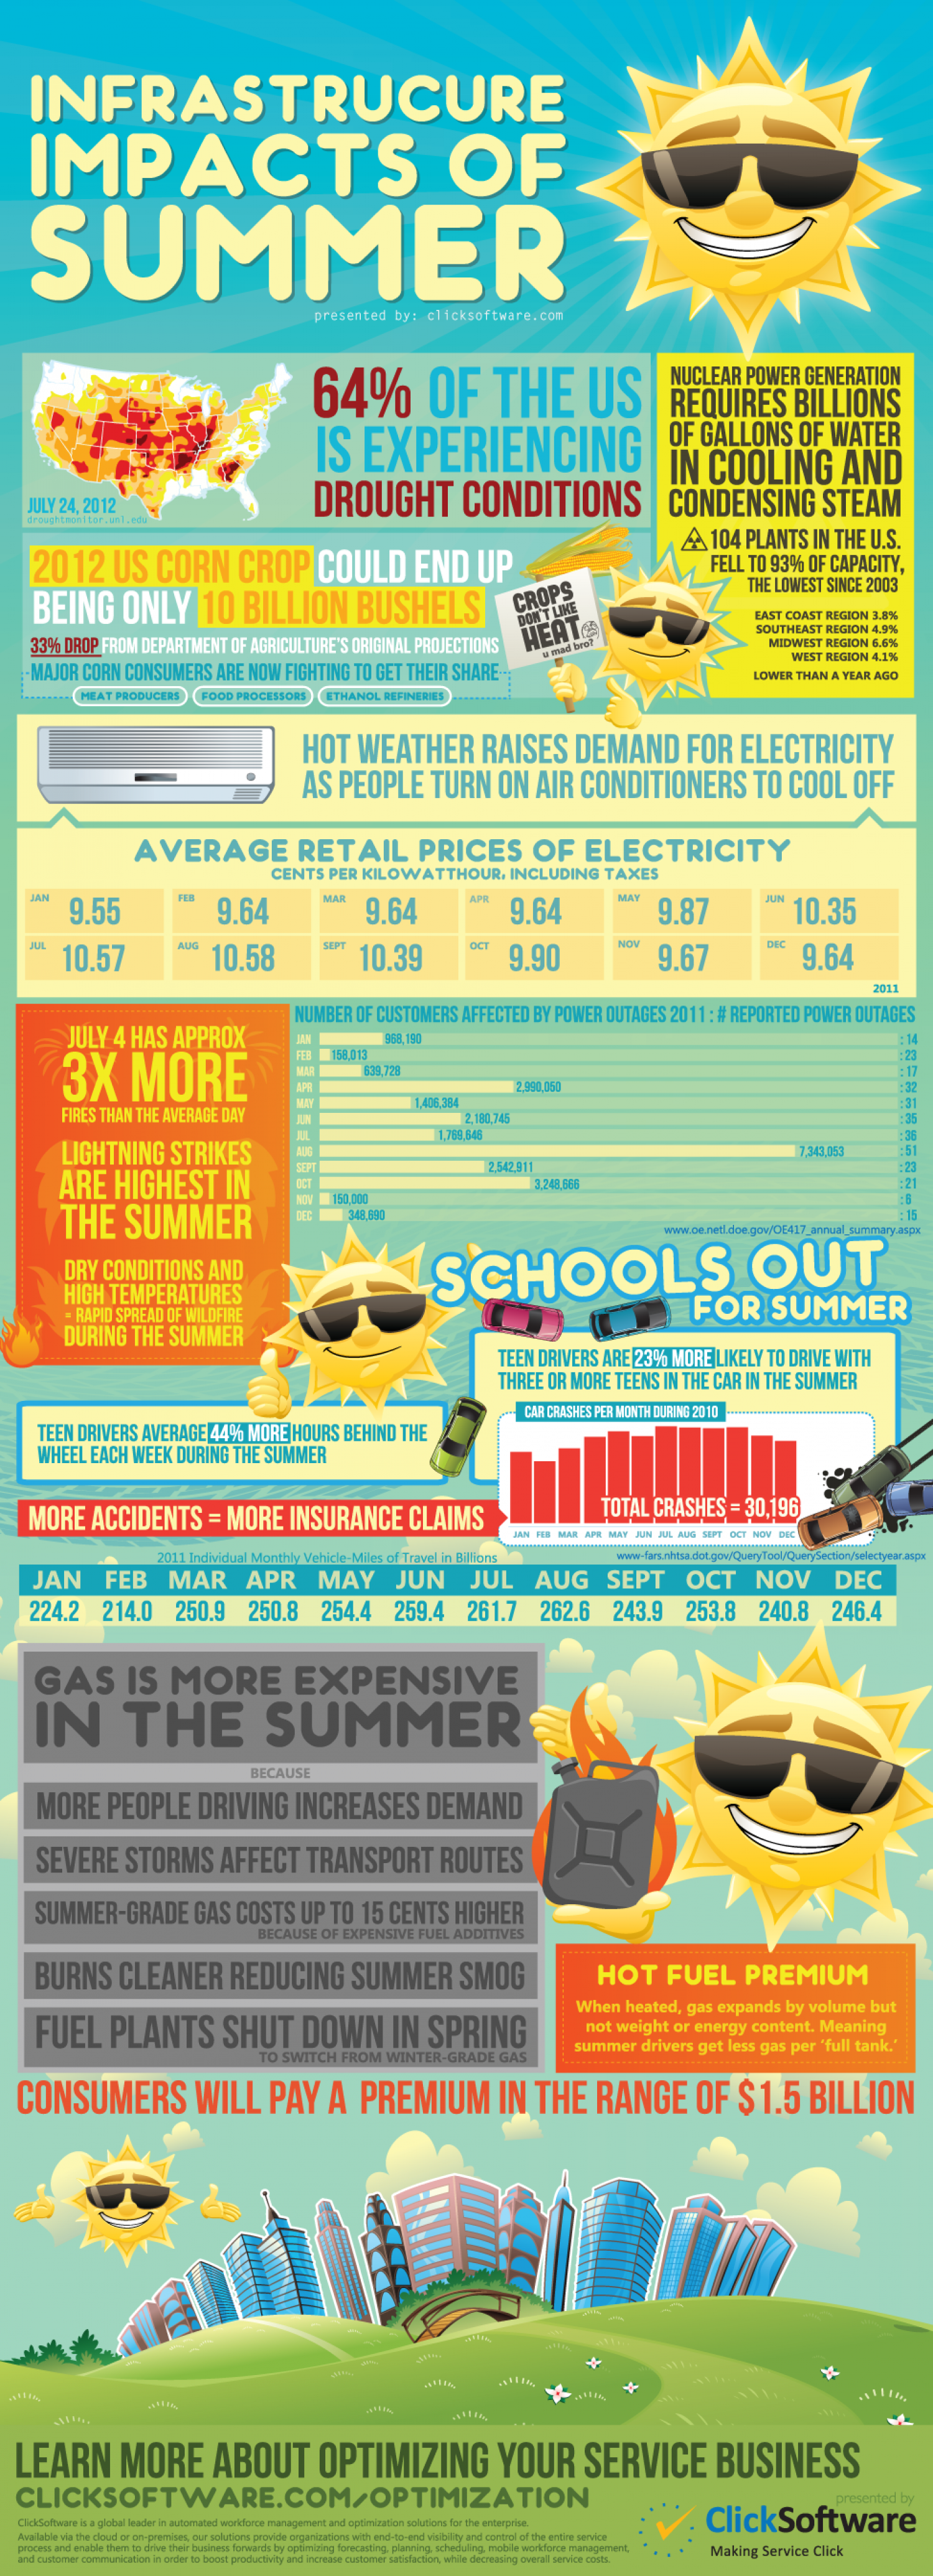 Infrastructure Impacts of Summer Infographic